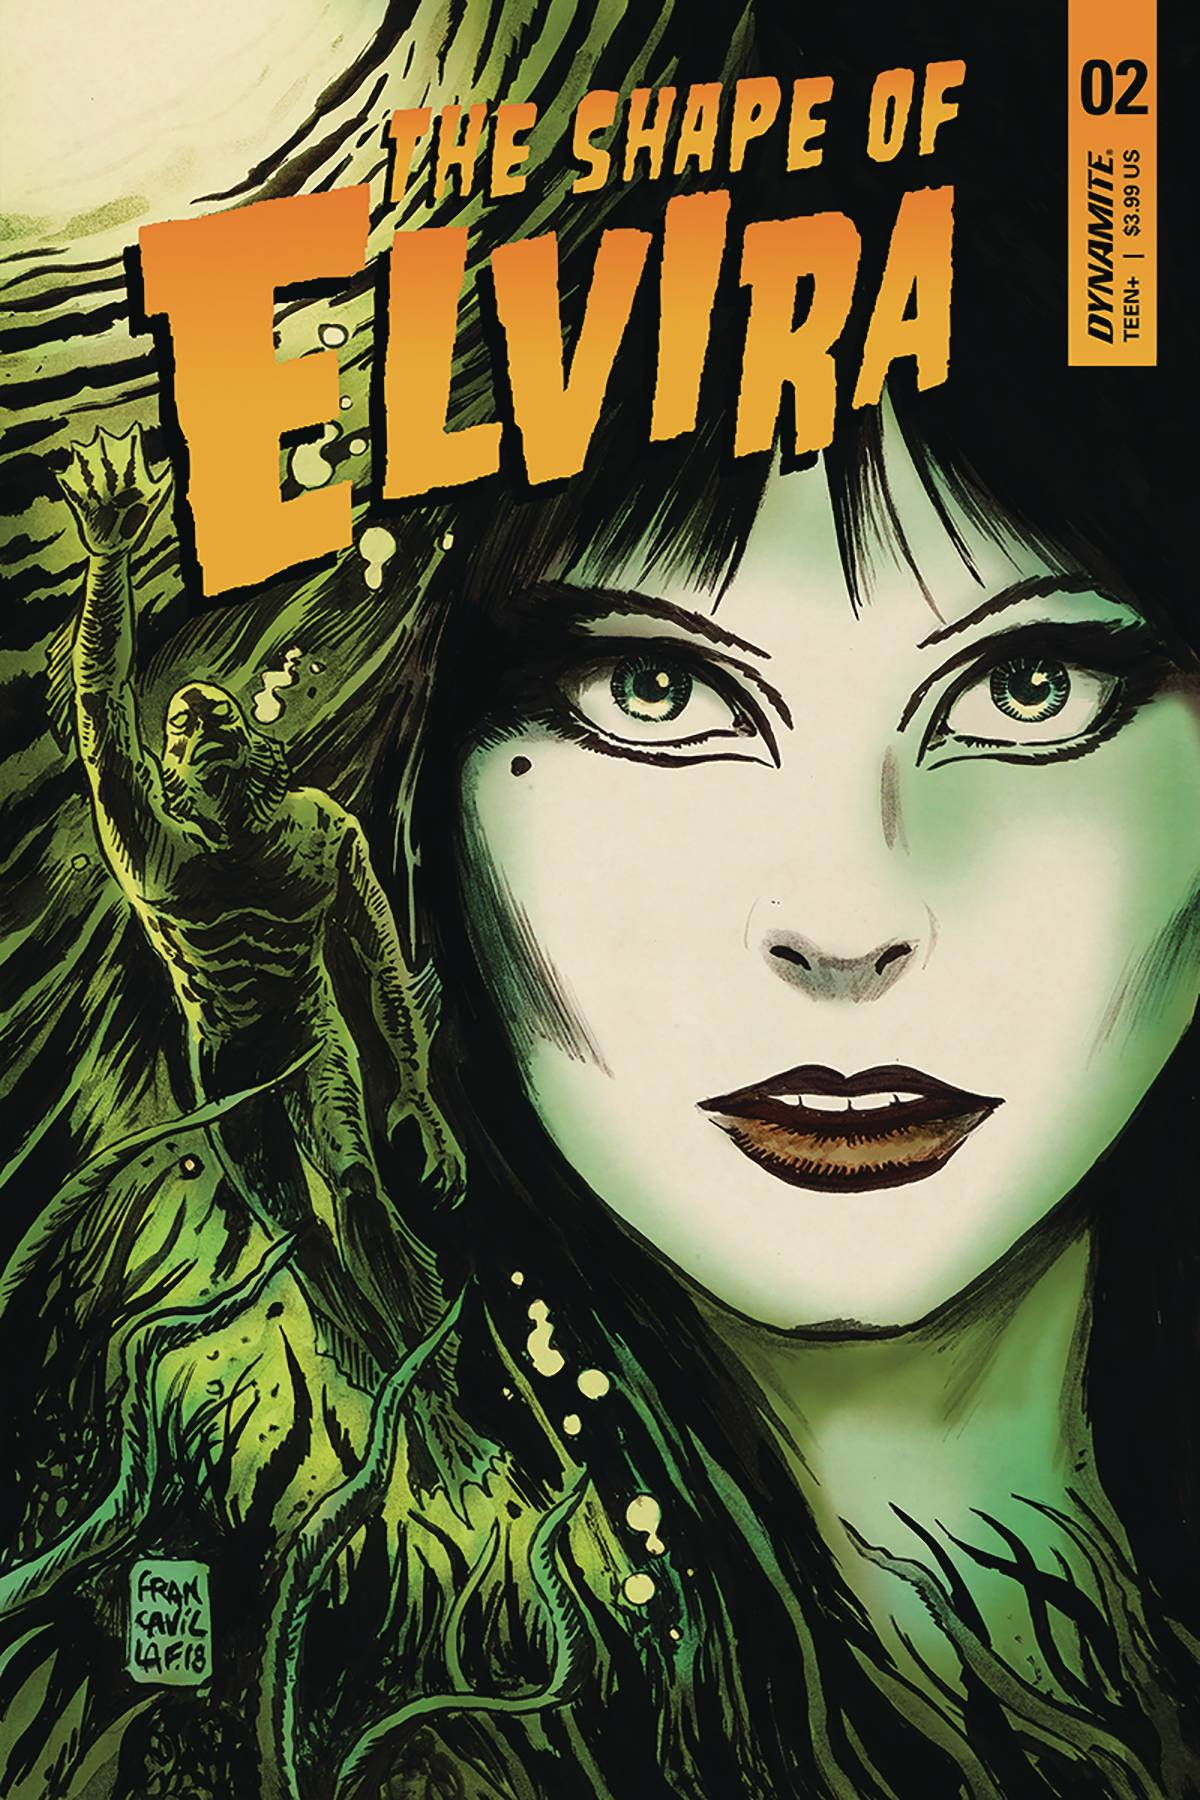 ELVIRA SHAPE OF ELVIRA 2 CVR A FRANCAVILLA.jpg